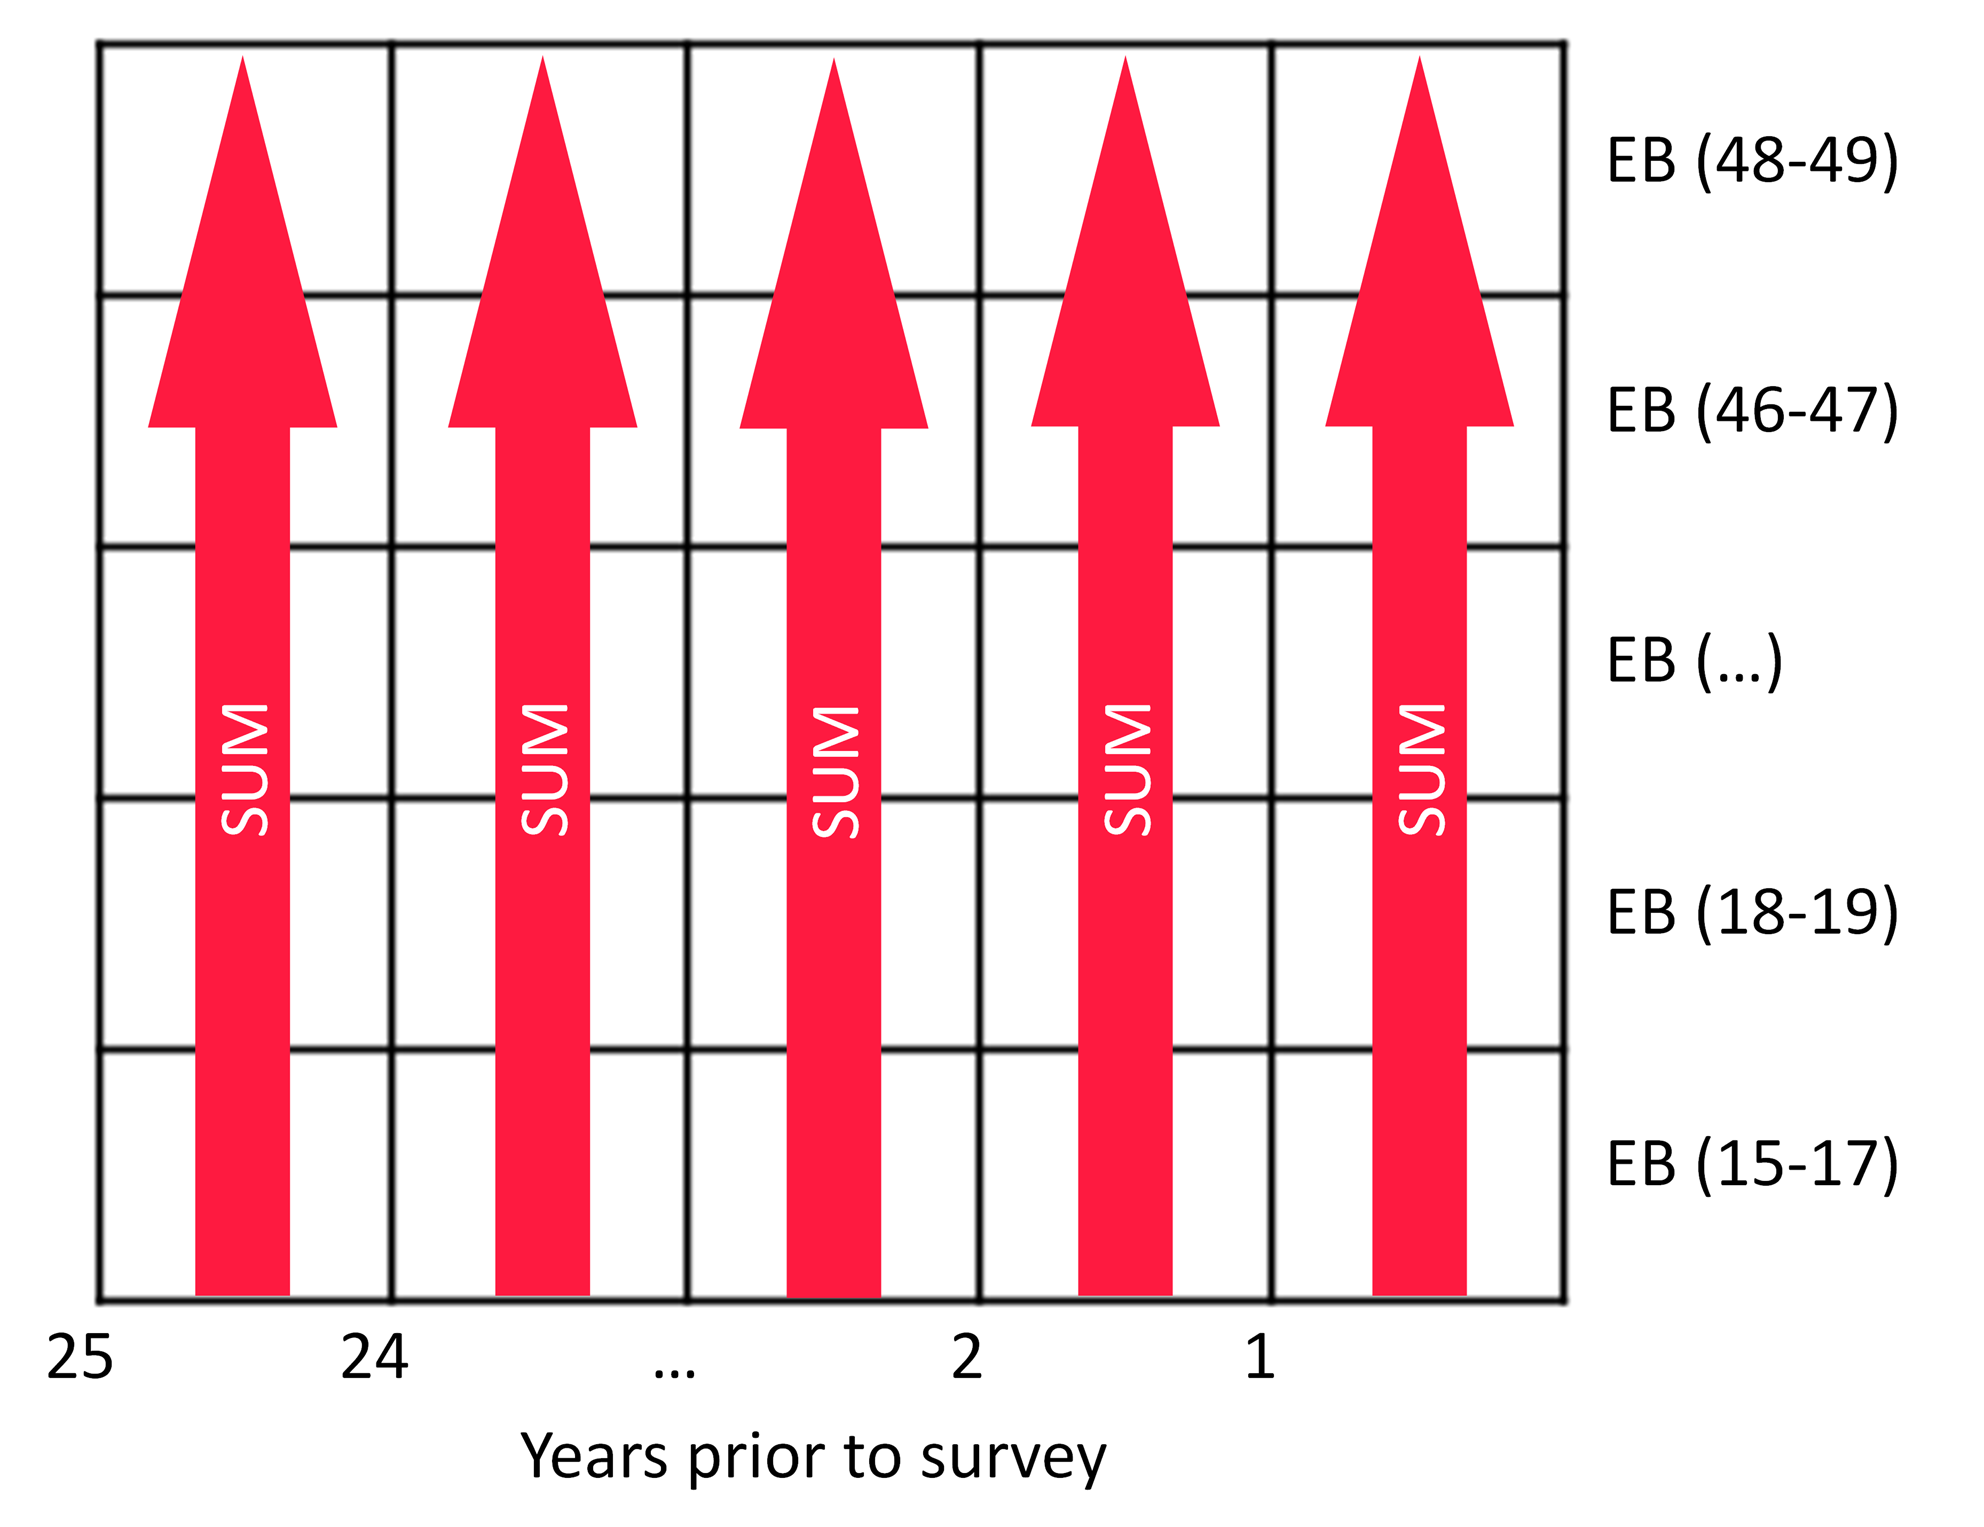 Lexis diagram showing the summation of expected births (EBs) across women of all ages for each year prior to the survey for the MAP method.